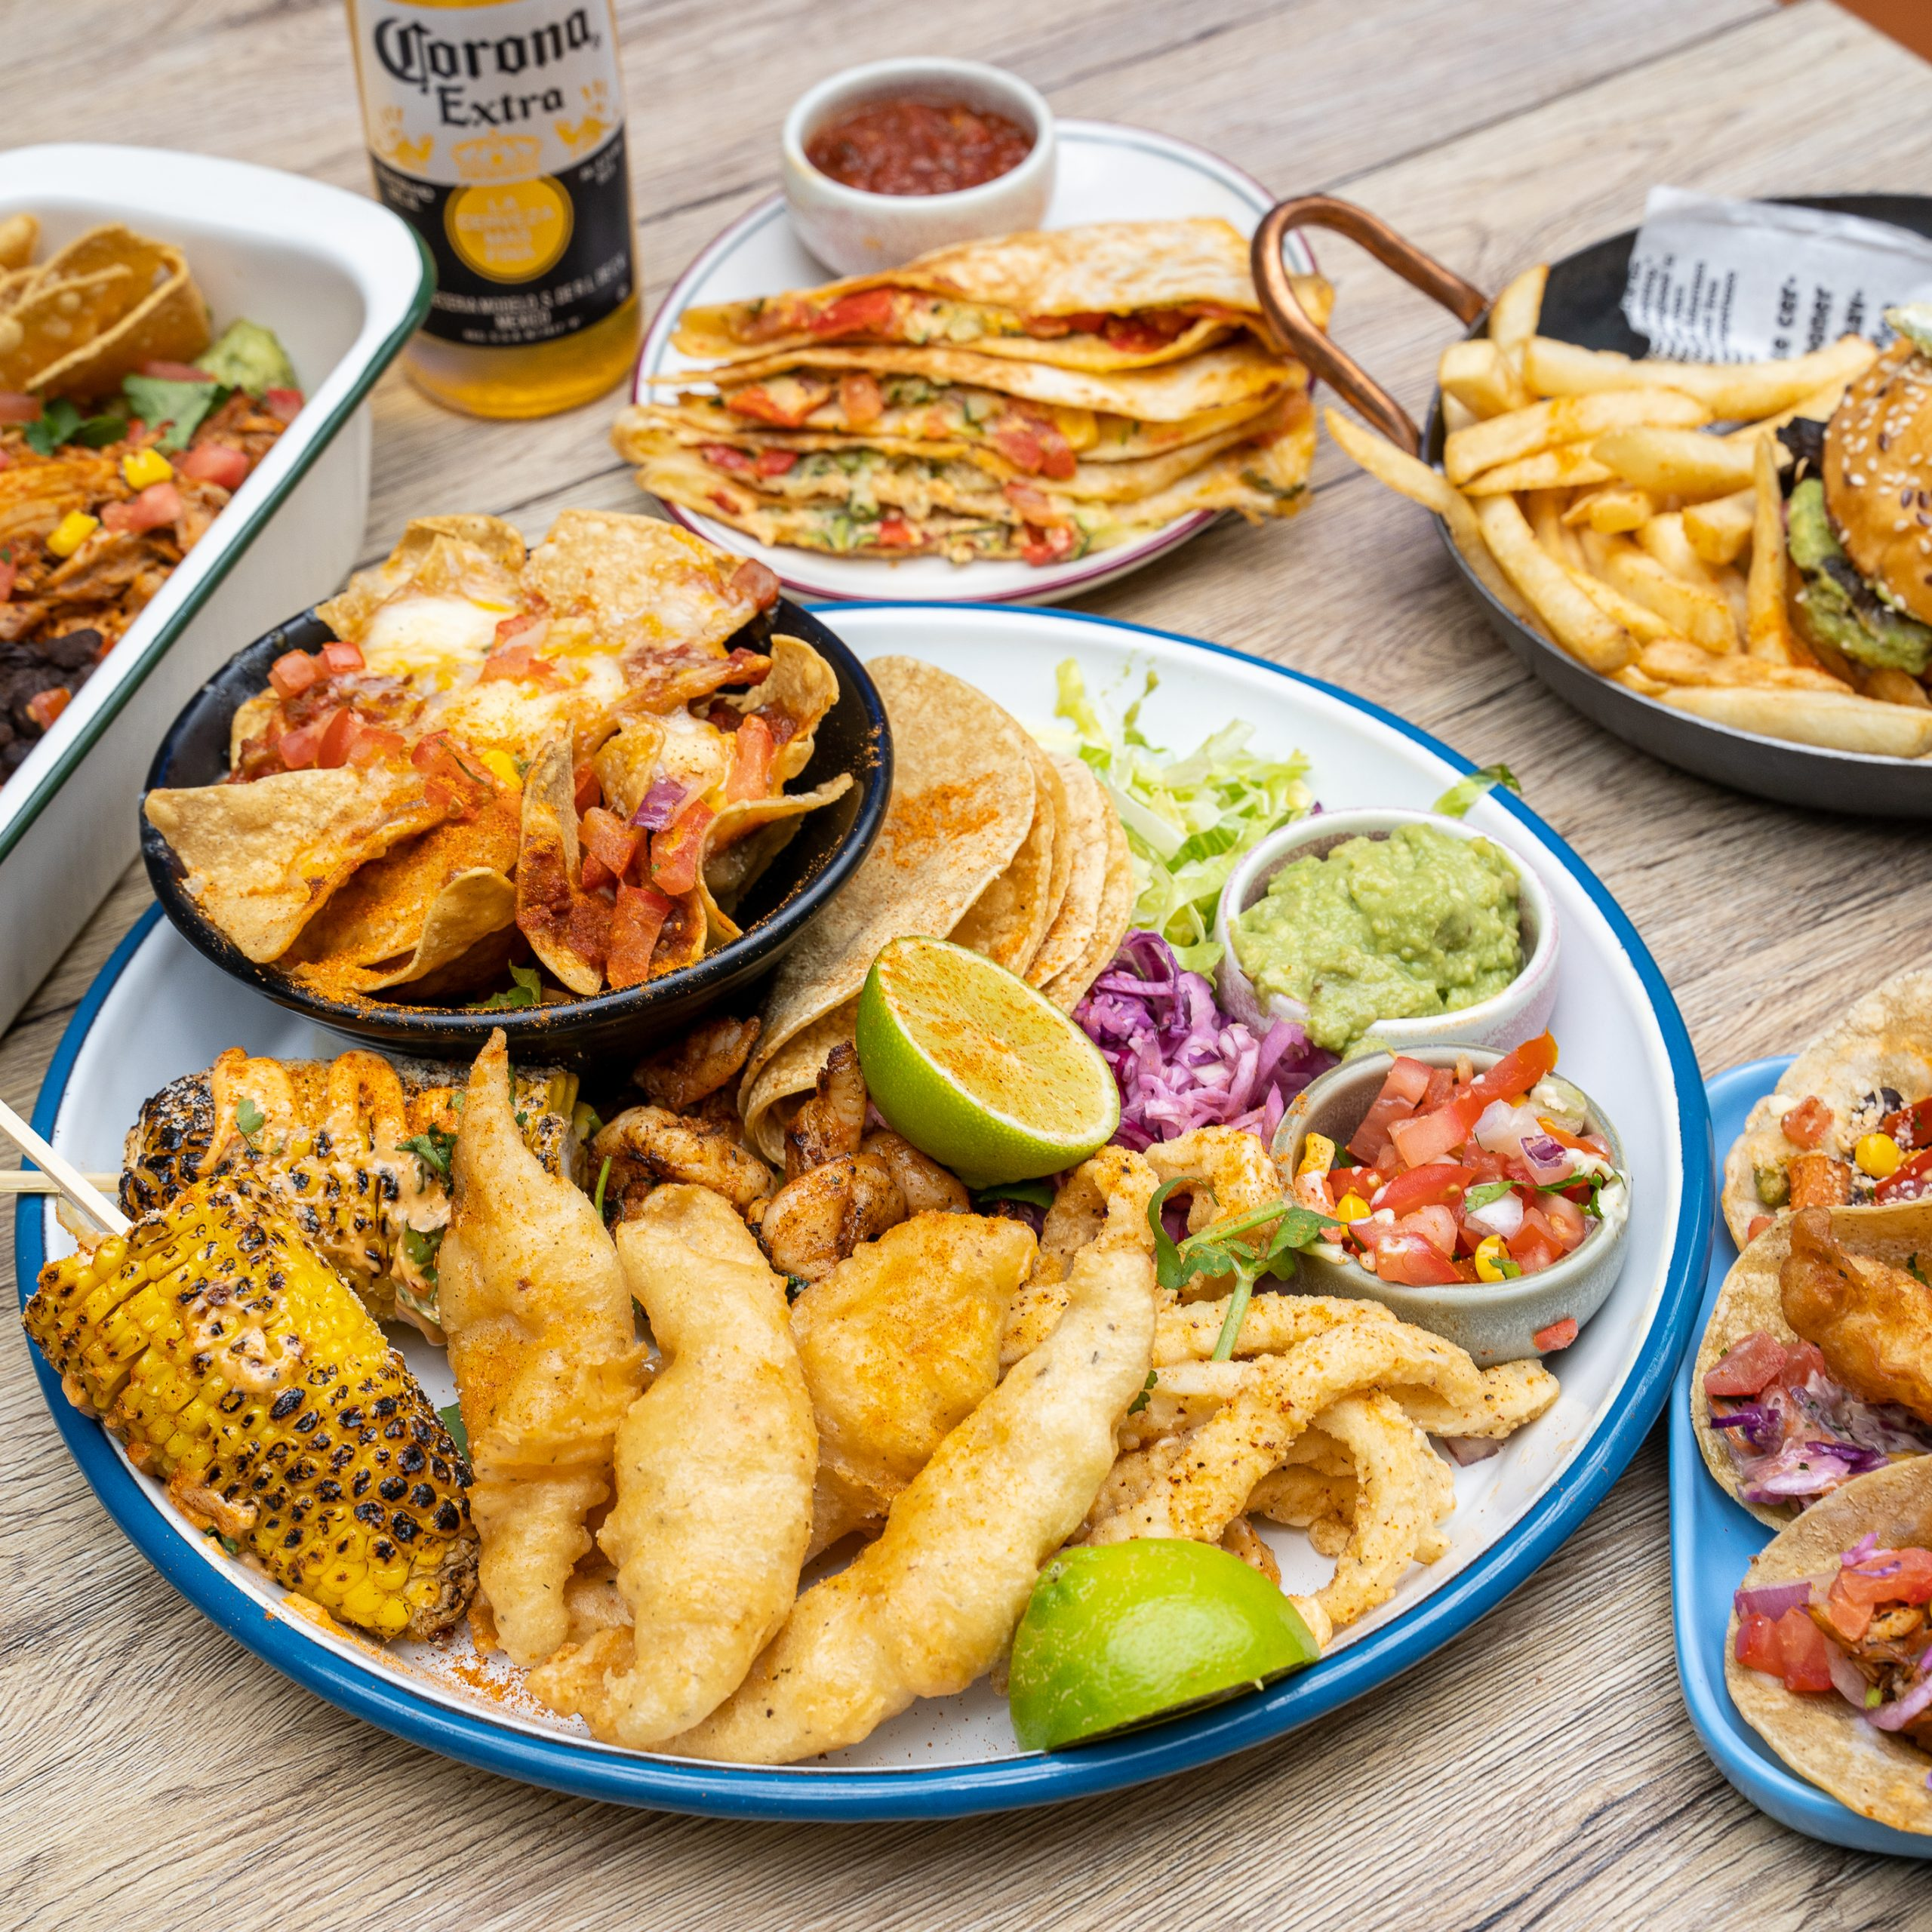 Mexican Food: Bottomless Brunch menu items served on a plate